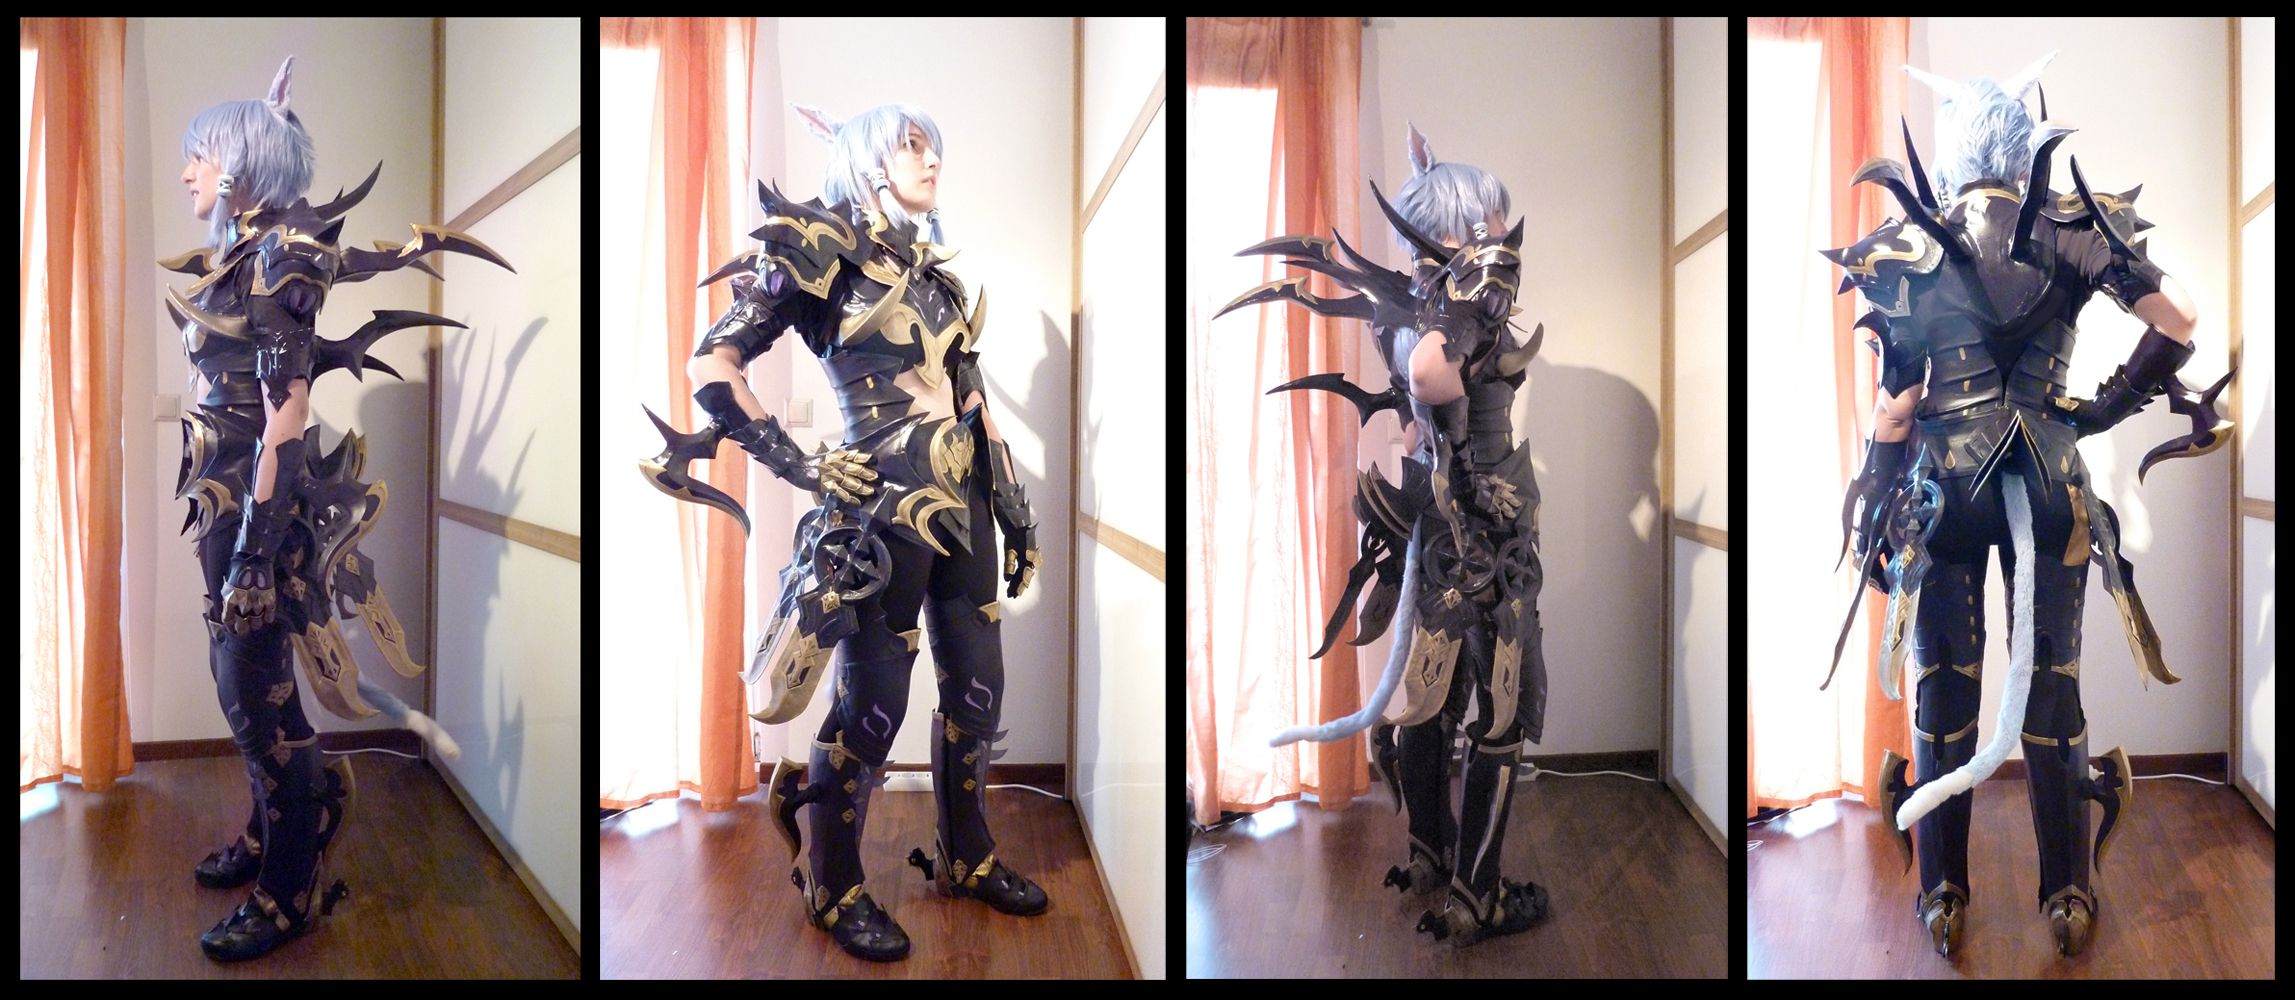 FFXIV Dragoon Cosplay Armor Update by Evil-Siren deviantart com on